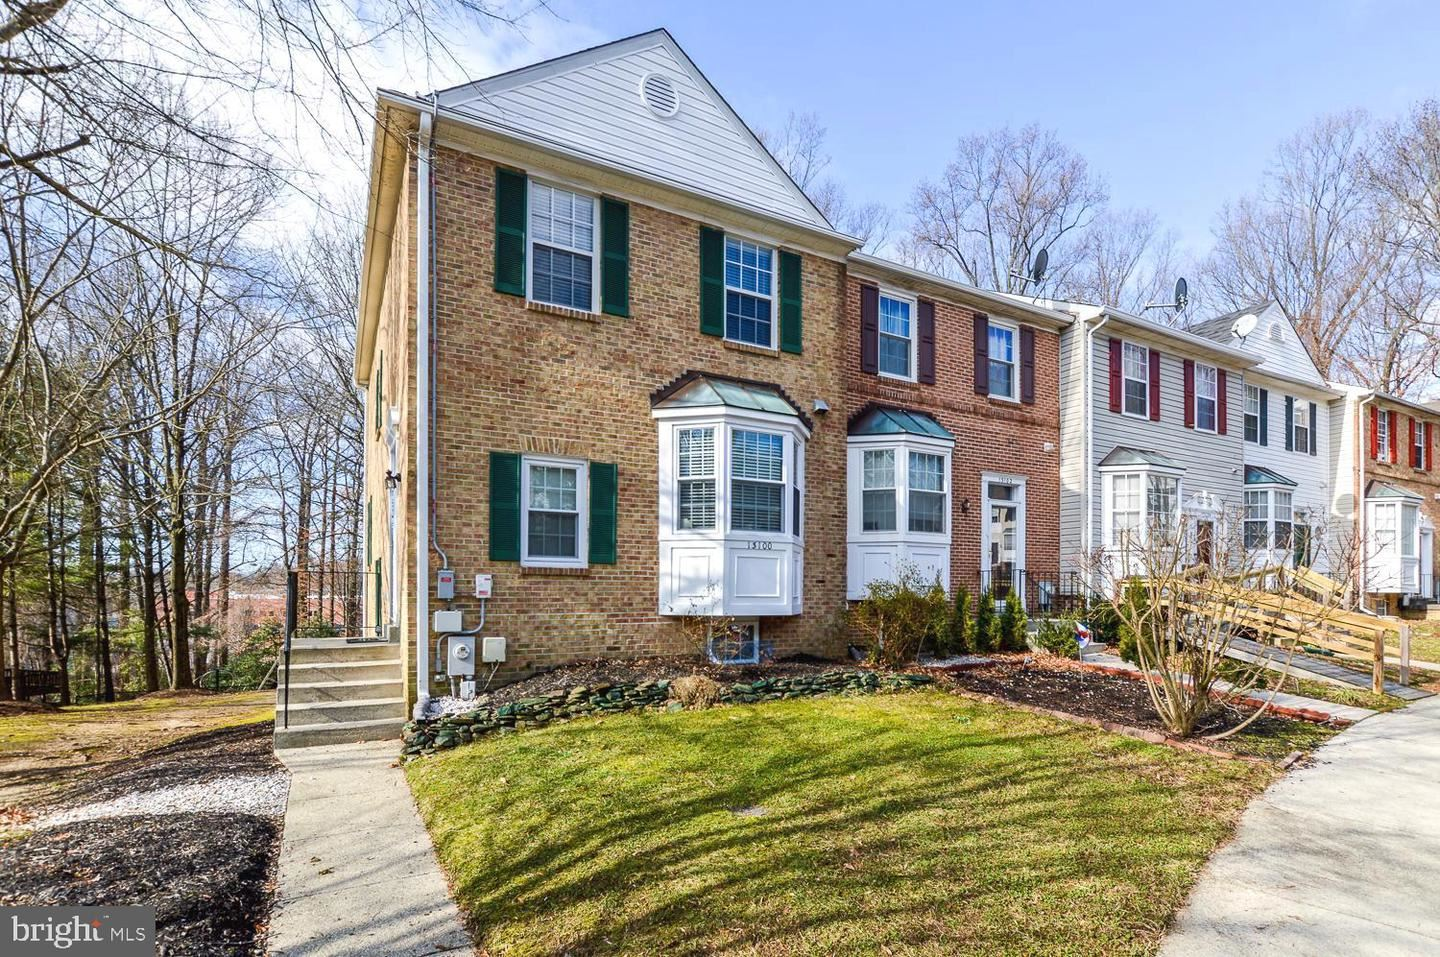 Photo for 13100 SILVER MAPLE CT, BOWIE, MD 20715 (MLS # MDPG559450)